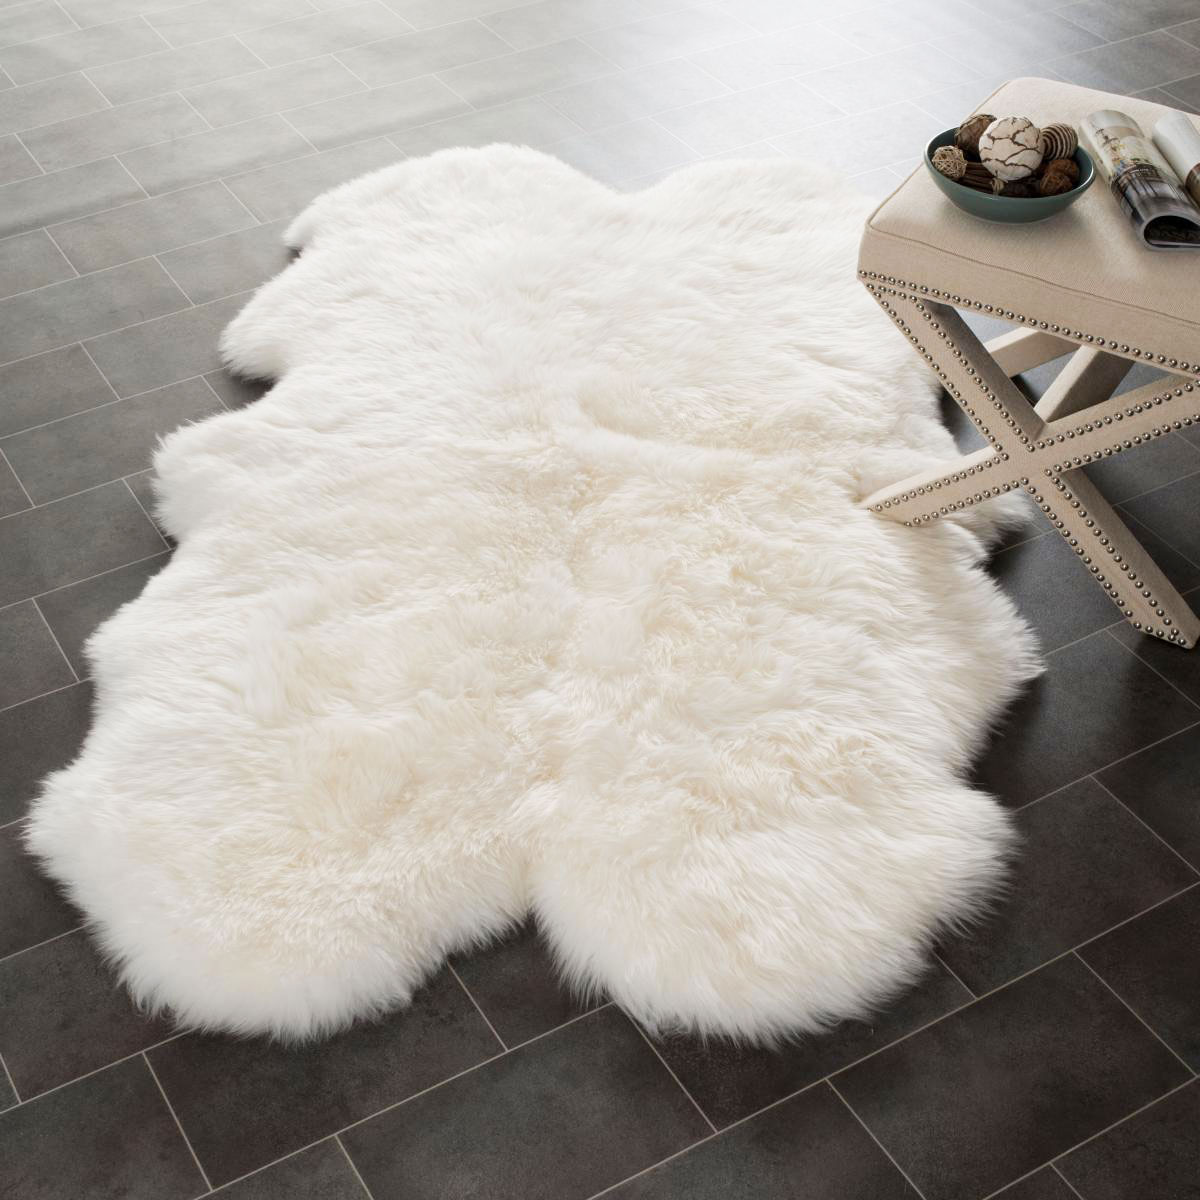 10 Best Sheepskin Rugs 2016 Reviews Of Wool And Faux